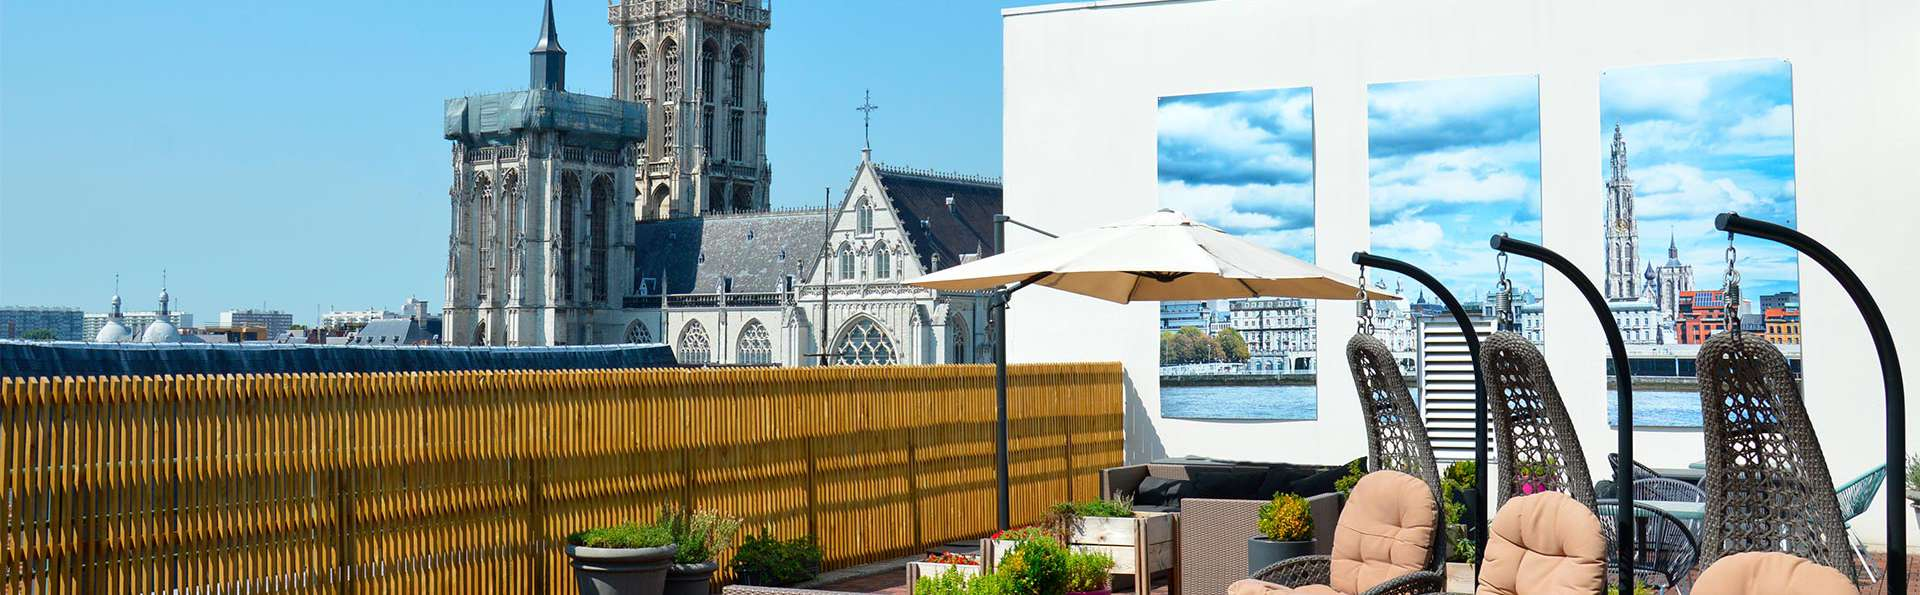 Hilton Antwerp Old Town - EDIT_N2_TERRACE.jpg